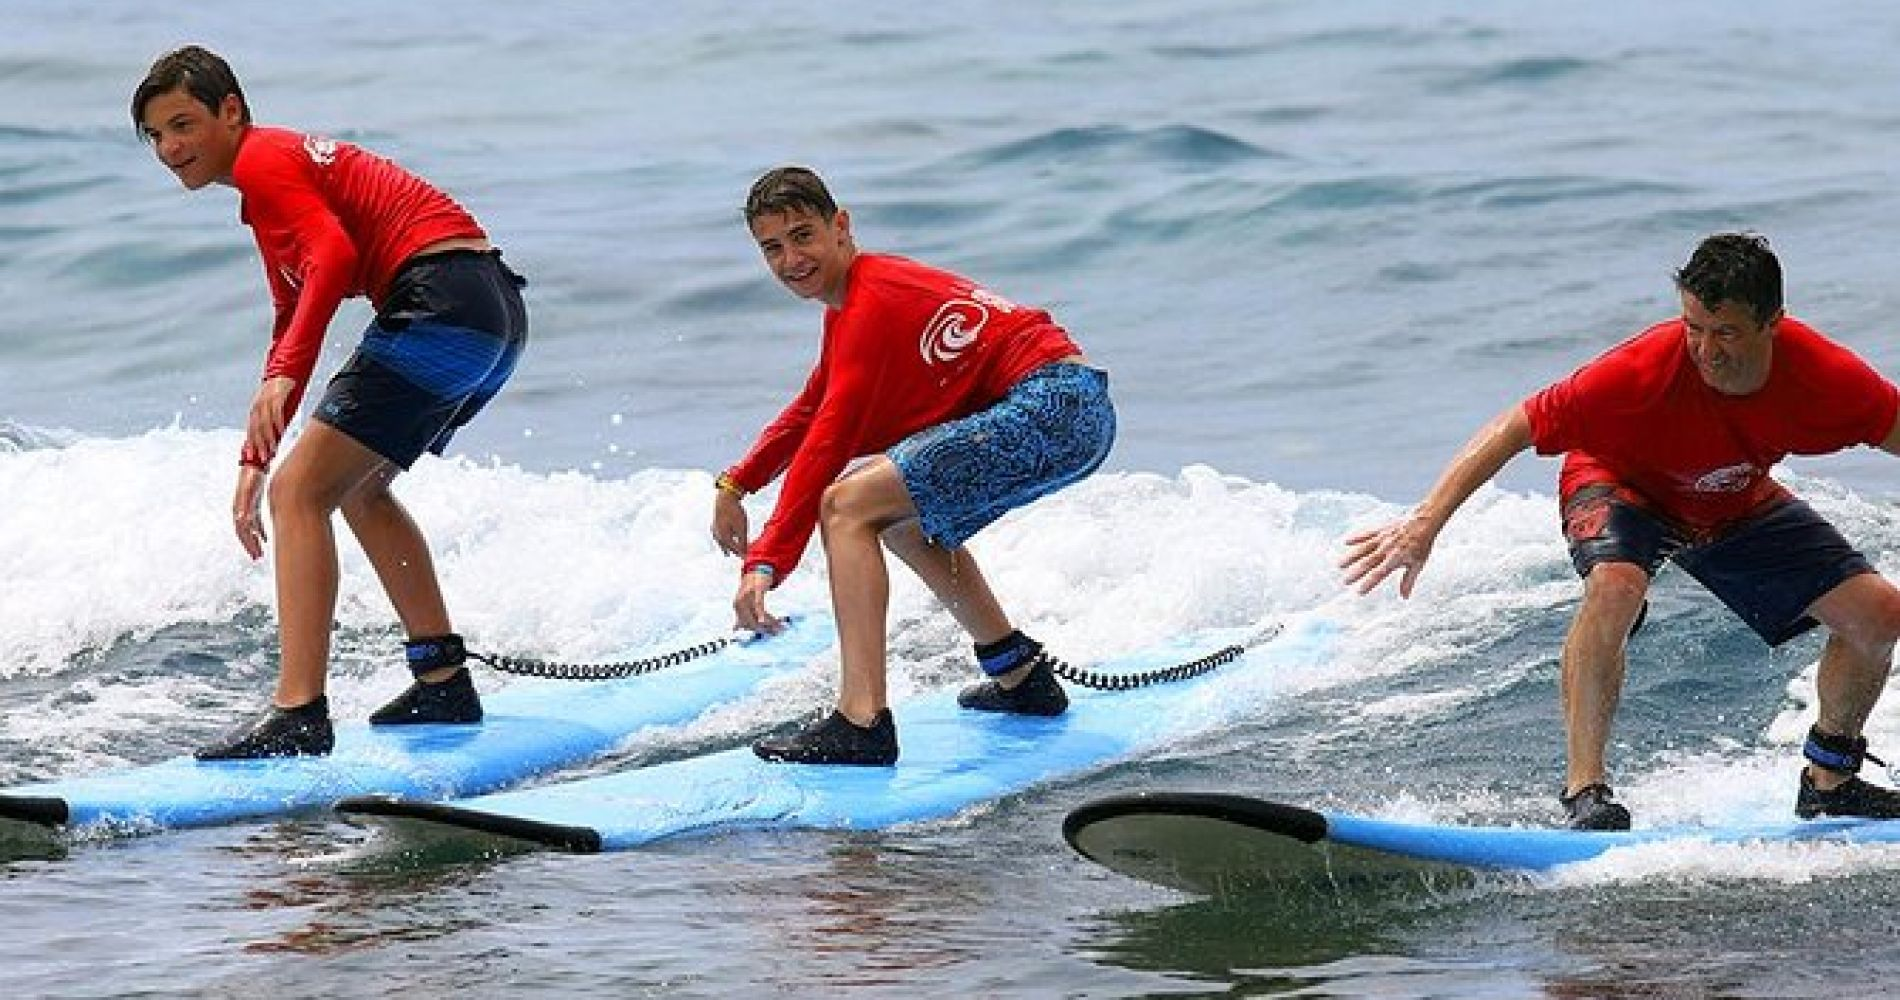 Group Surf Lesson in Kona Hawaii